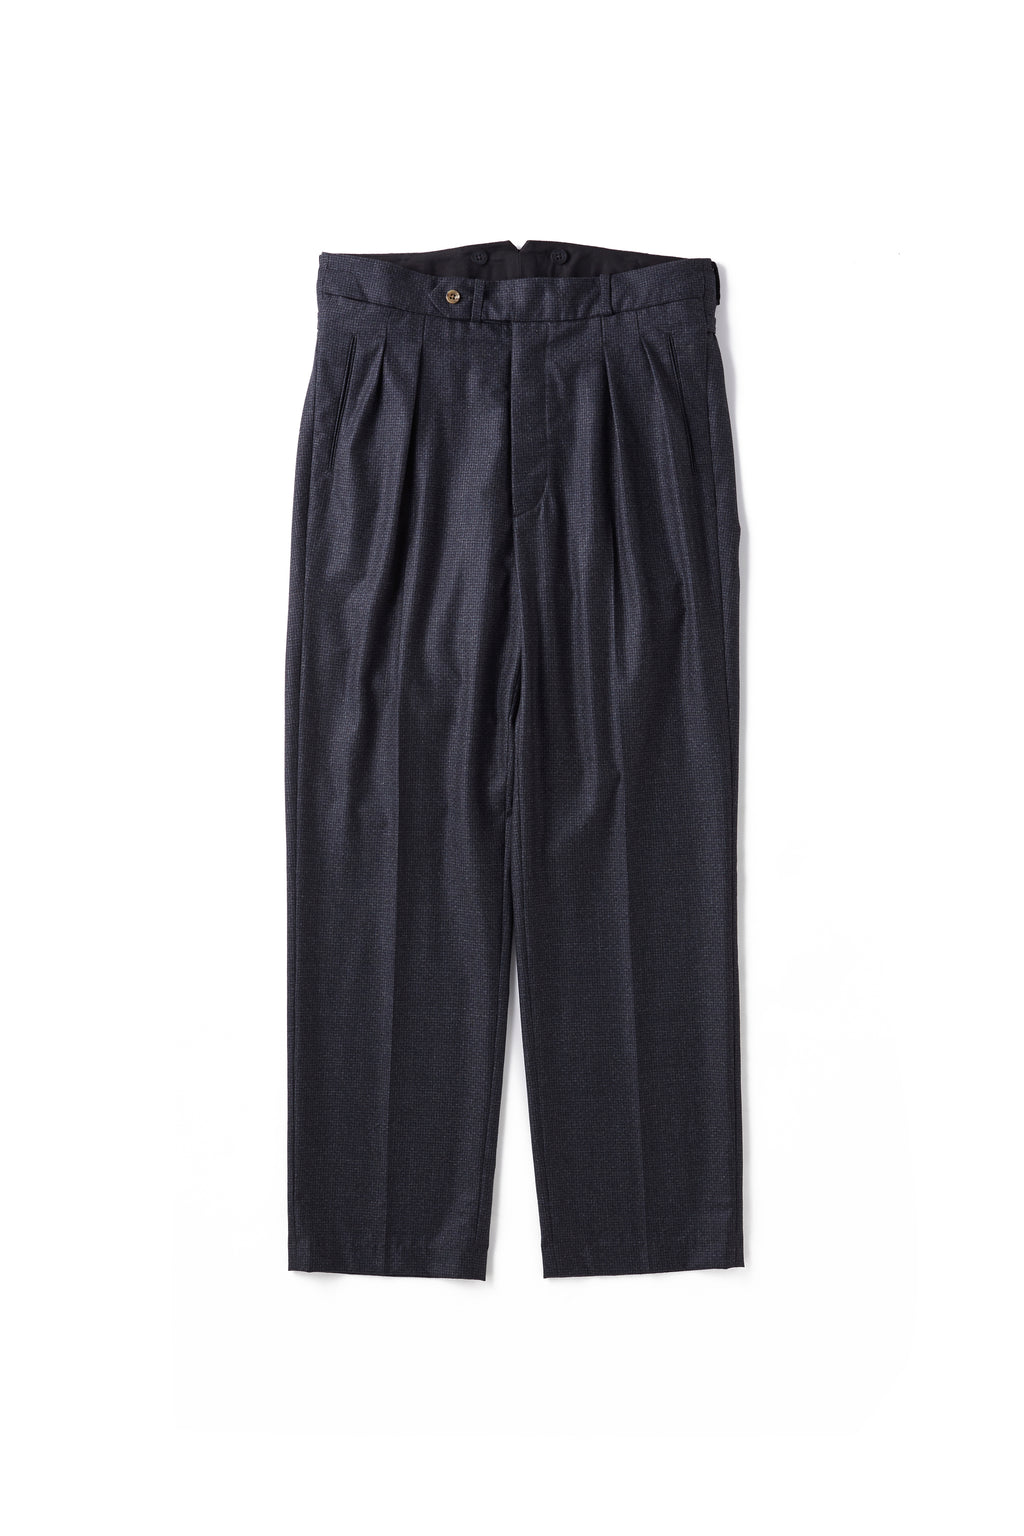 DOUBLE-PLEATED SMARTY TROUSER - 202OJ-PT11